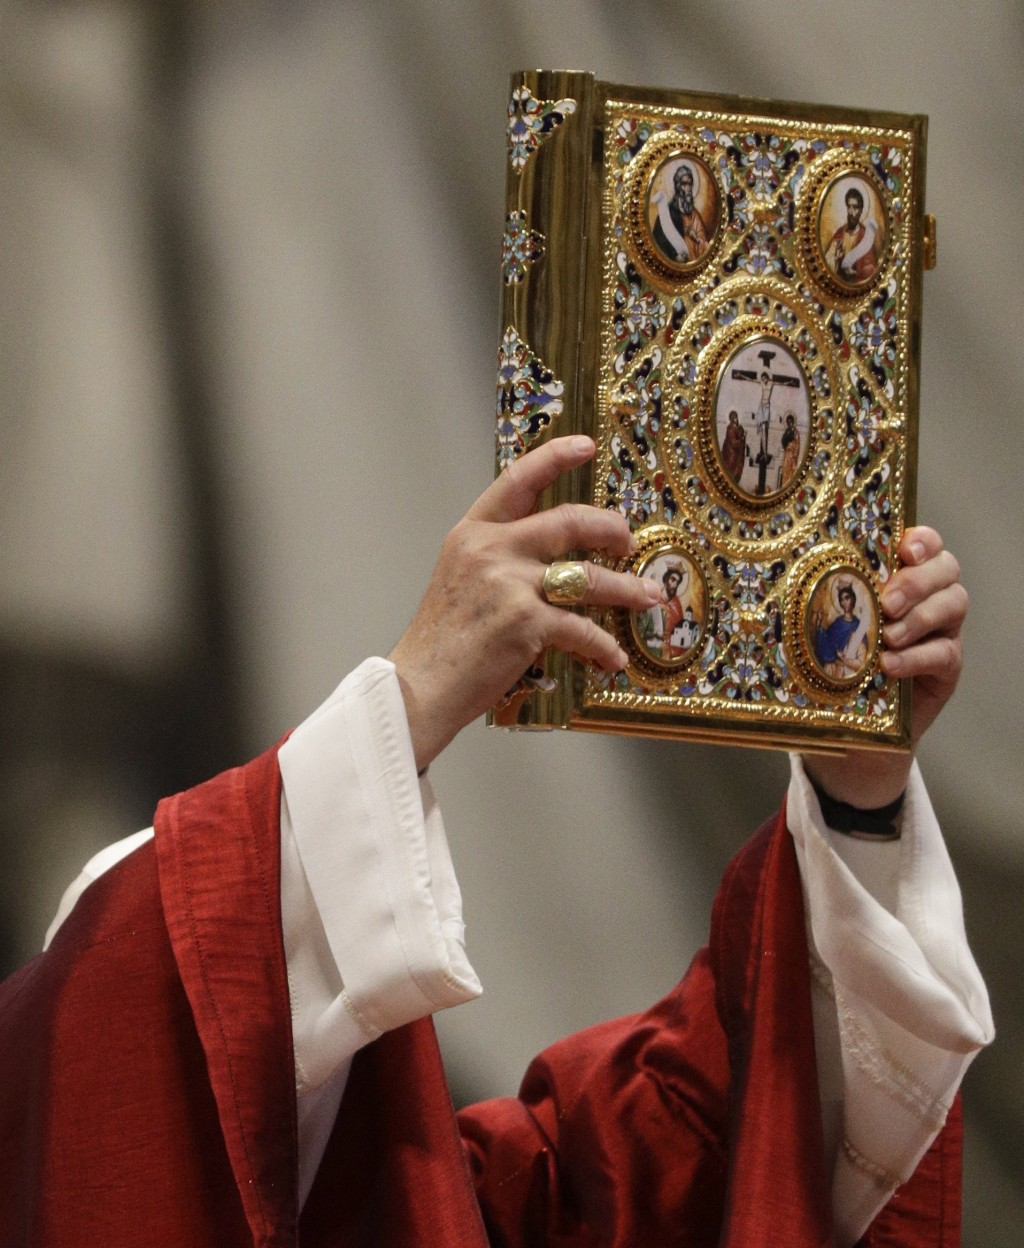 Pope Francis holds up the book of Gospels as he celebrates Mass in St. Peter's Basilica at the Vatican, Saturday, June 29, 2019. (AP Photo/Gregorio Bo...